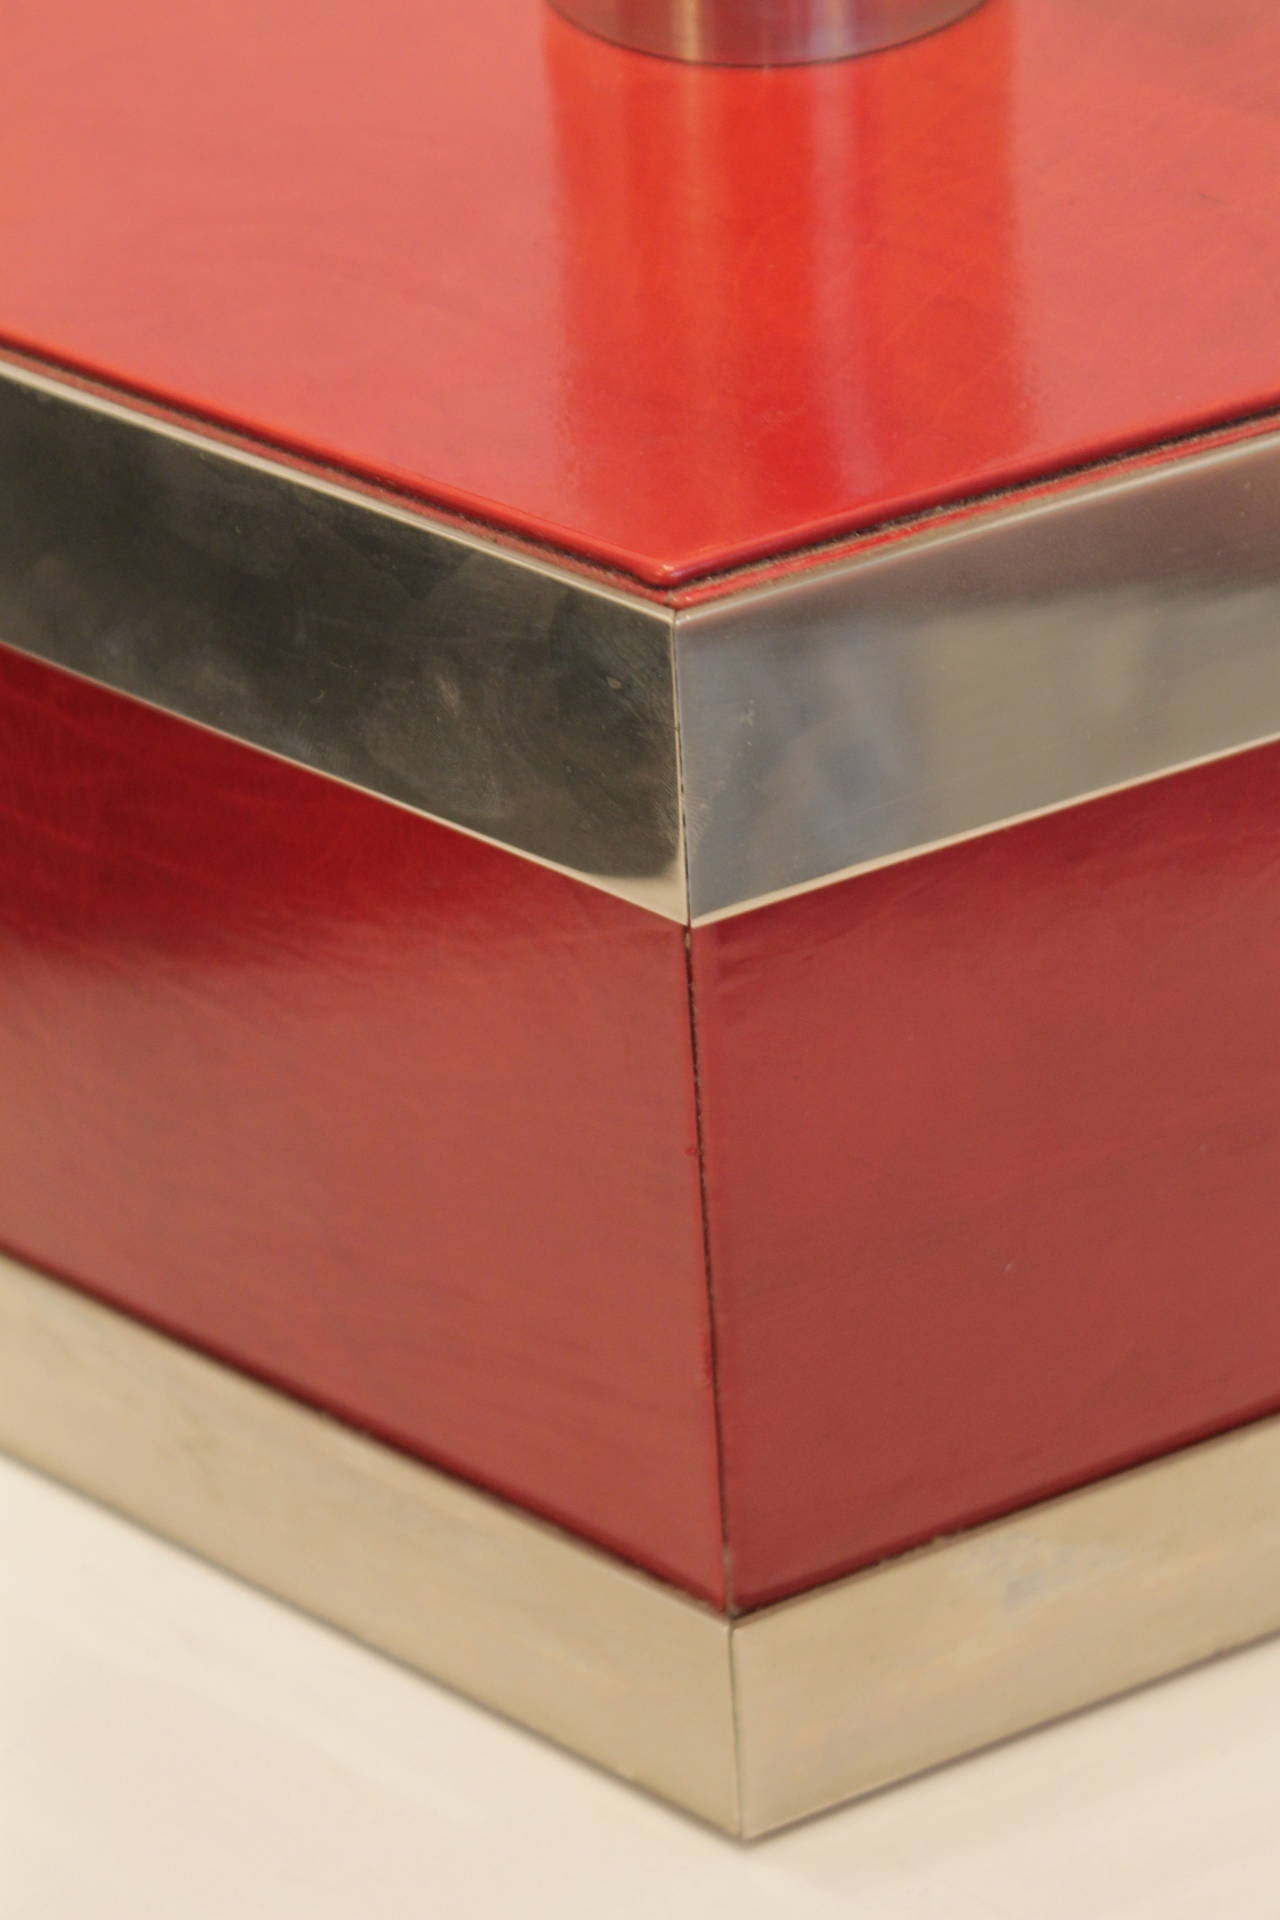 Red Bases For Living Room Decor: Italian Chrome And Red Leather Lamp Base At 1stdibs